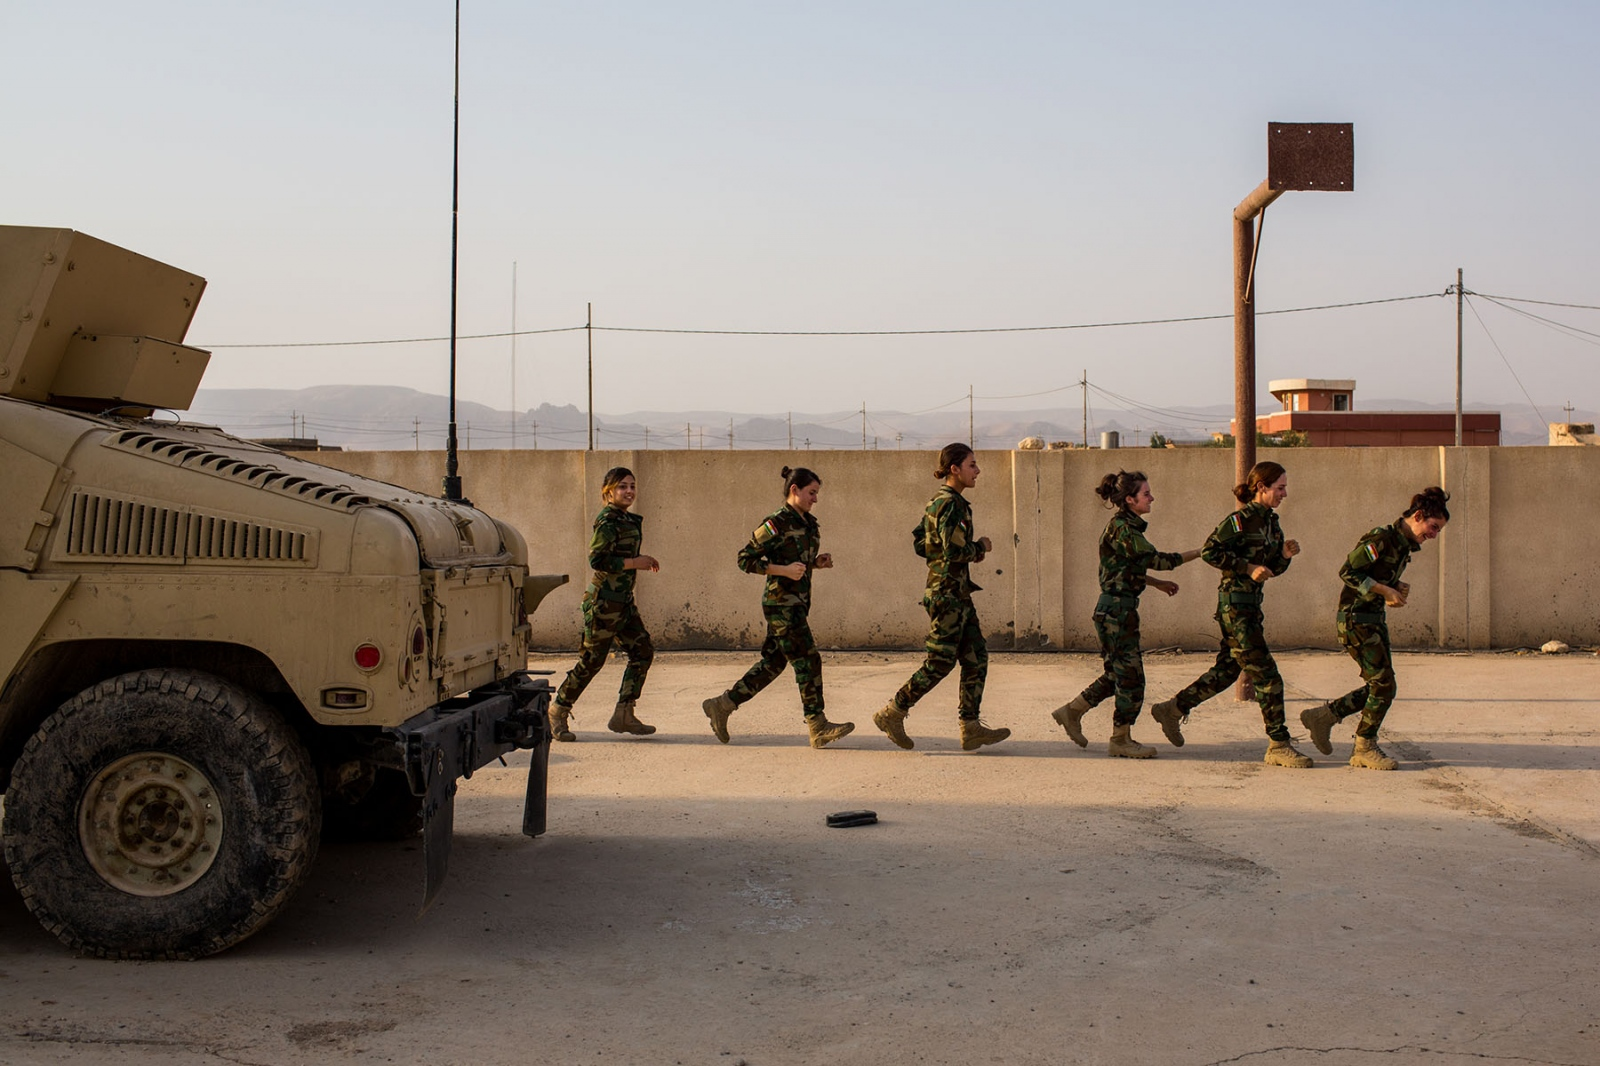 Soldiers with the Yazidi 'Sun Ladies' run laps during morning exercises at their base near Sinjar, in Kurdistan, Iraq, on Tuesday, August 30, 2016. The 'Sun Ladies', made up of several hundred Yazidi women, some who were formerly enslaved by ISIS, are attempting to fight back against the extremist group with the help of the Kurdish Peshmerga through training, funds, and arms.